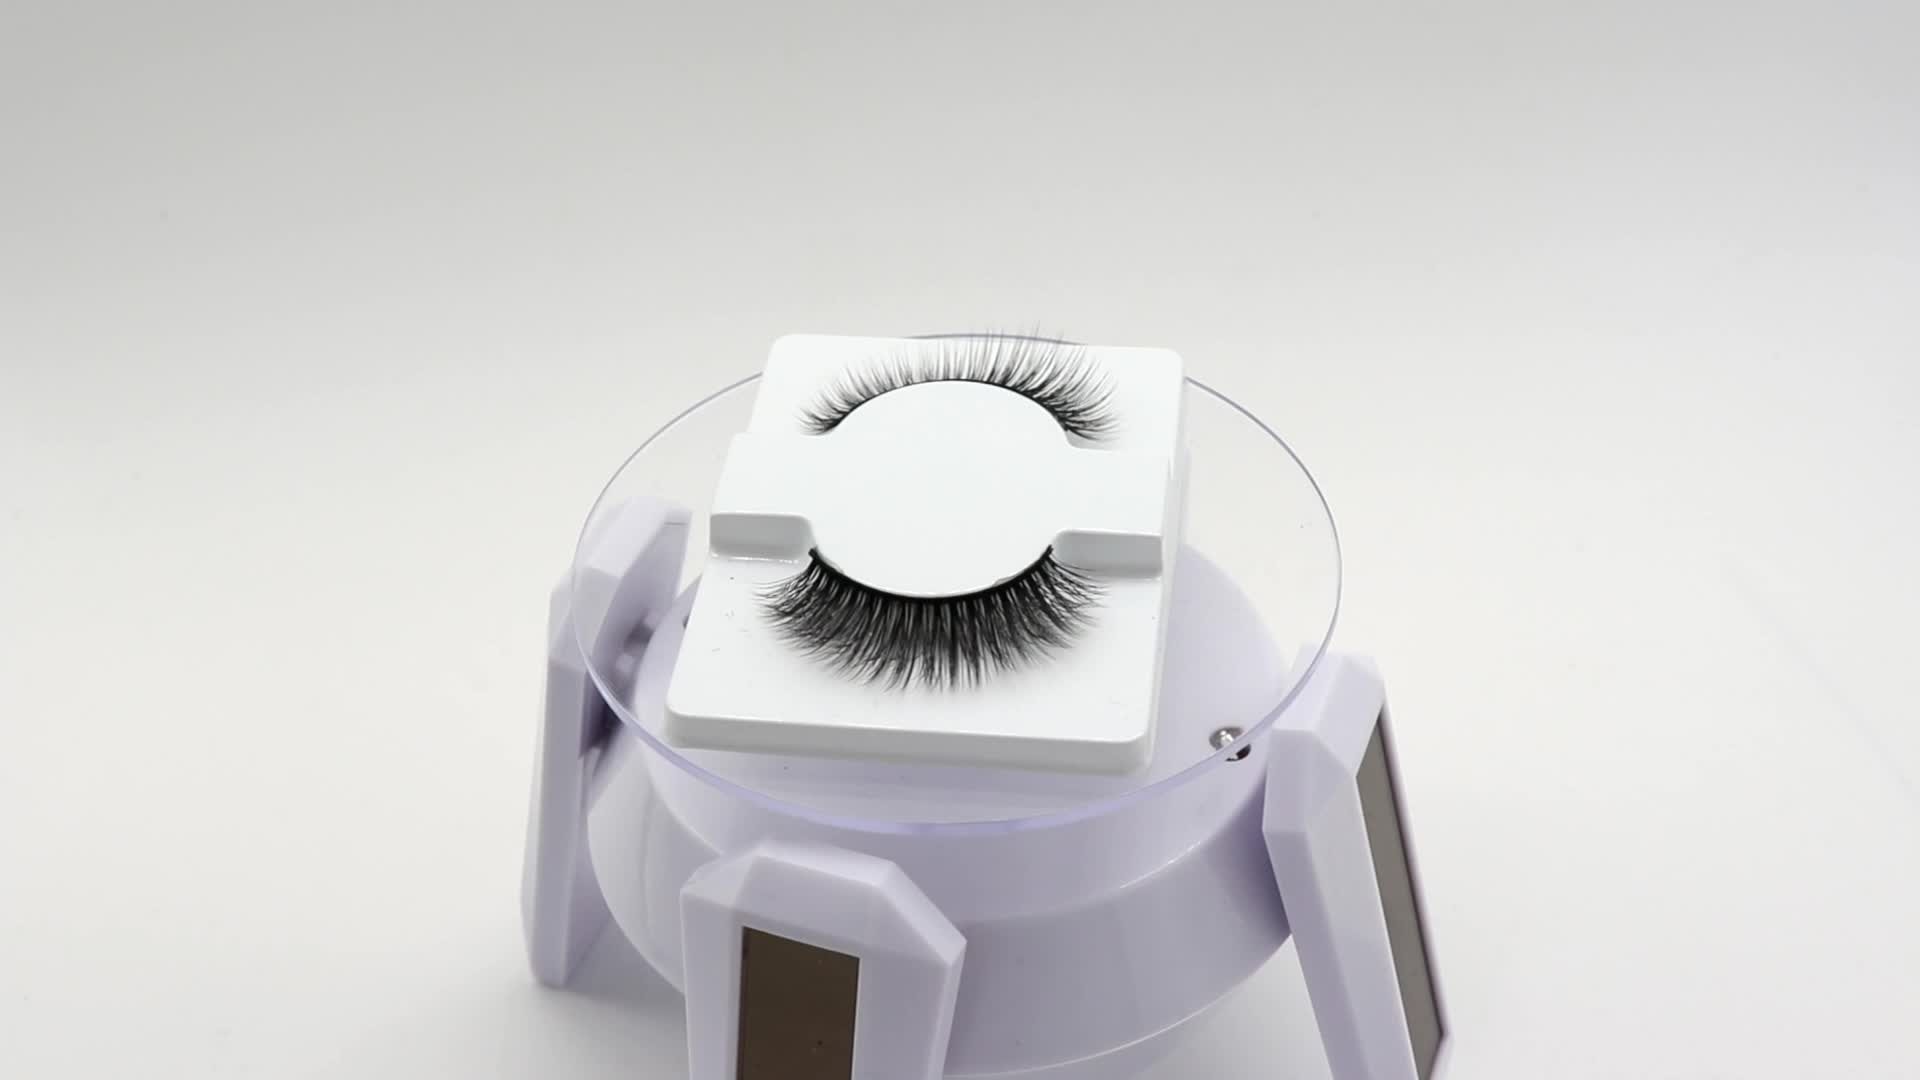 winkie D41 5d lashes private label in false eyelash packaging create your own brand by faux mink eyelash vendors